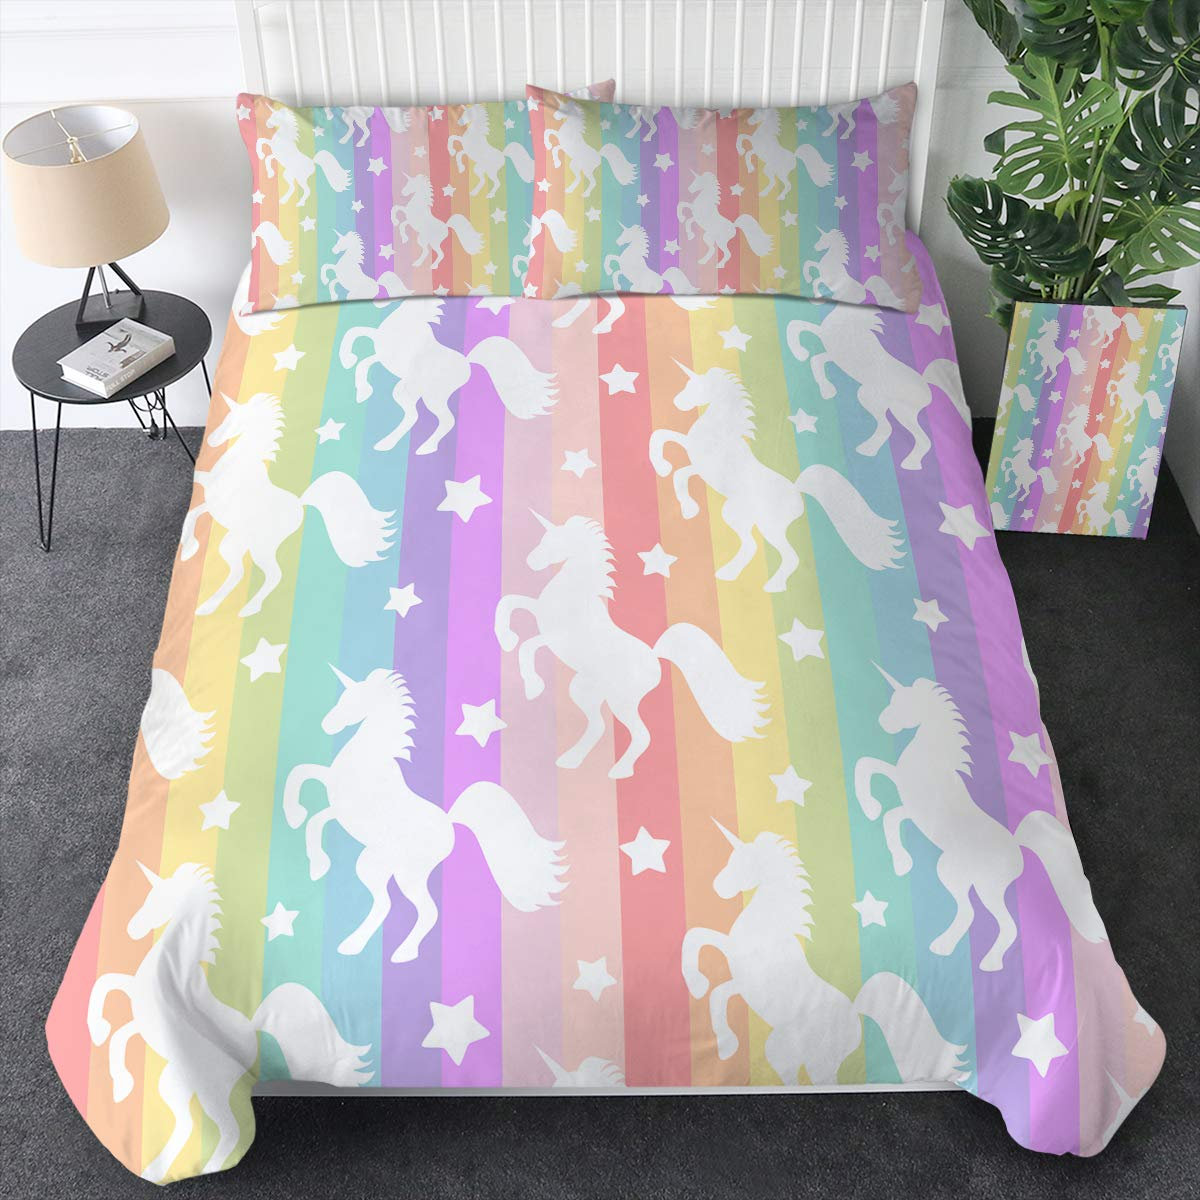 Sleepwish Whimsy Unicorn Gallop Bedding Duvet Cover Sets Pastel Rainbow Stripes Pattern Comforter Cover Magical Horse Bed Set 3 Pieces Kids Unicorn Gifts (Queen)